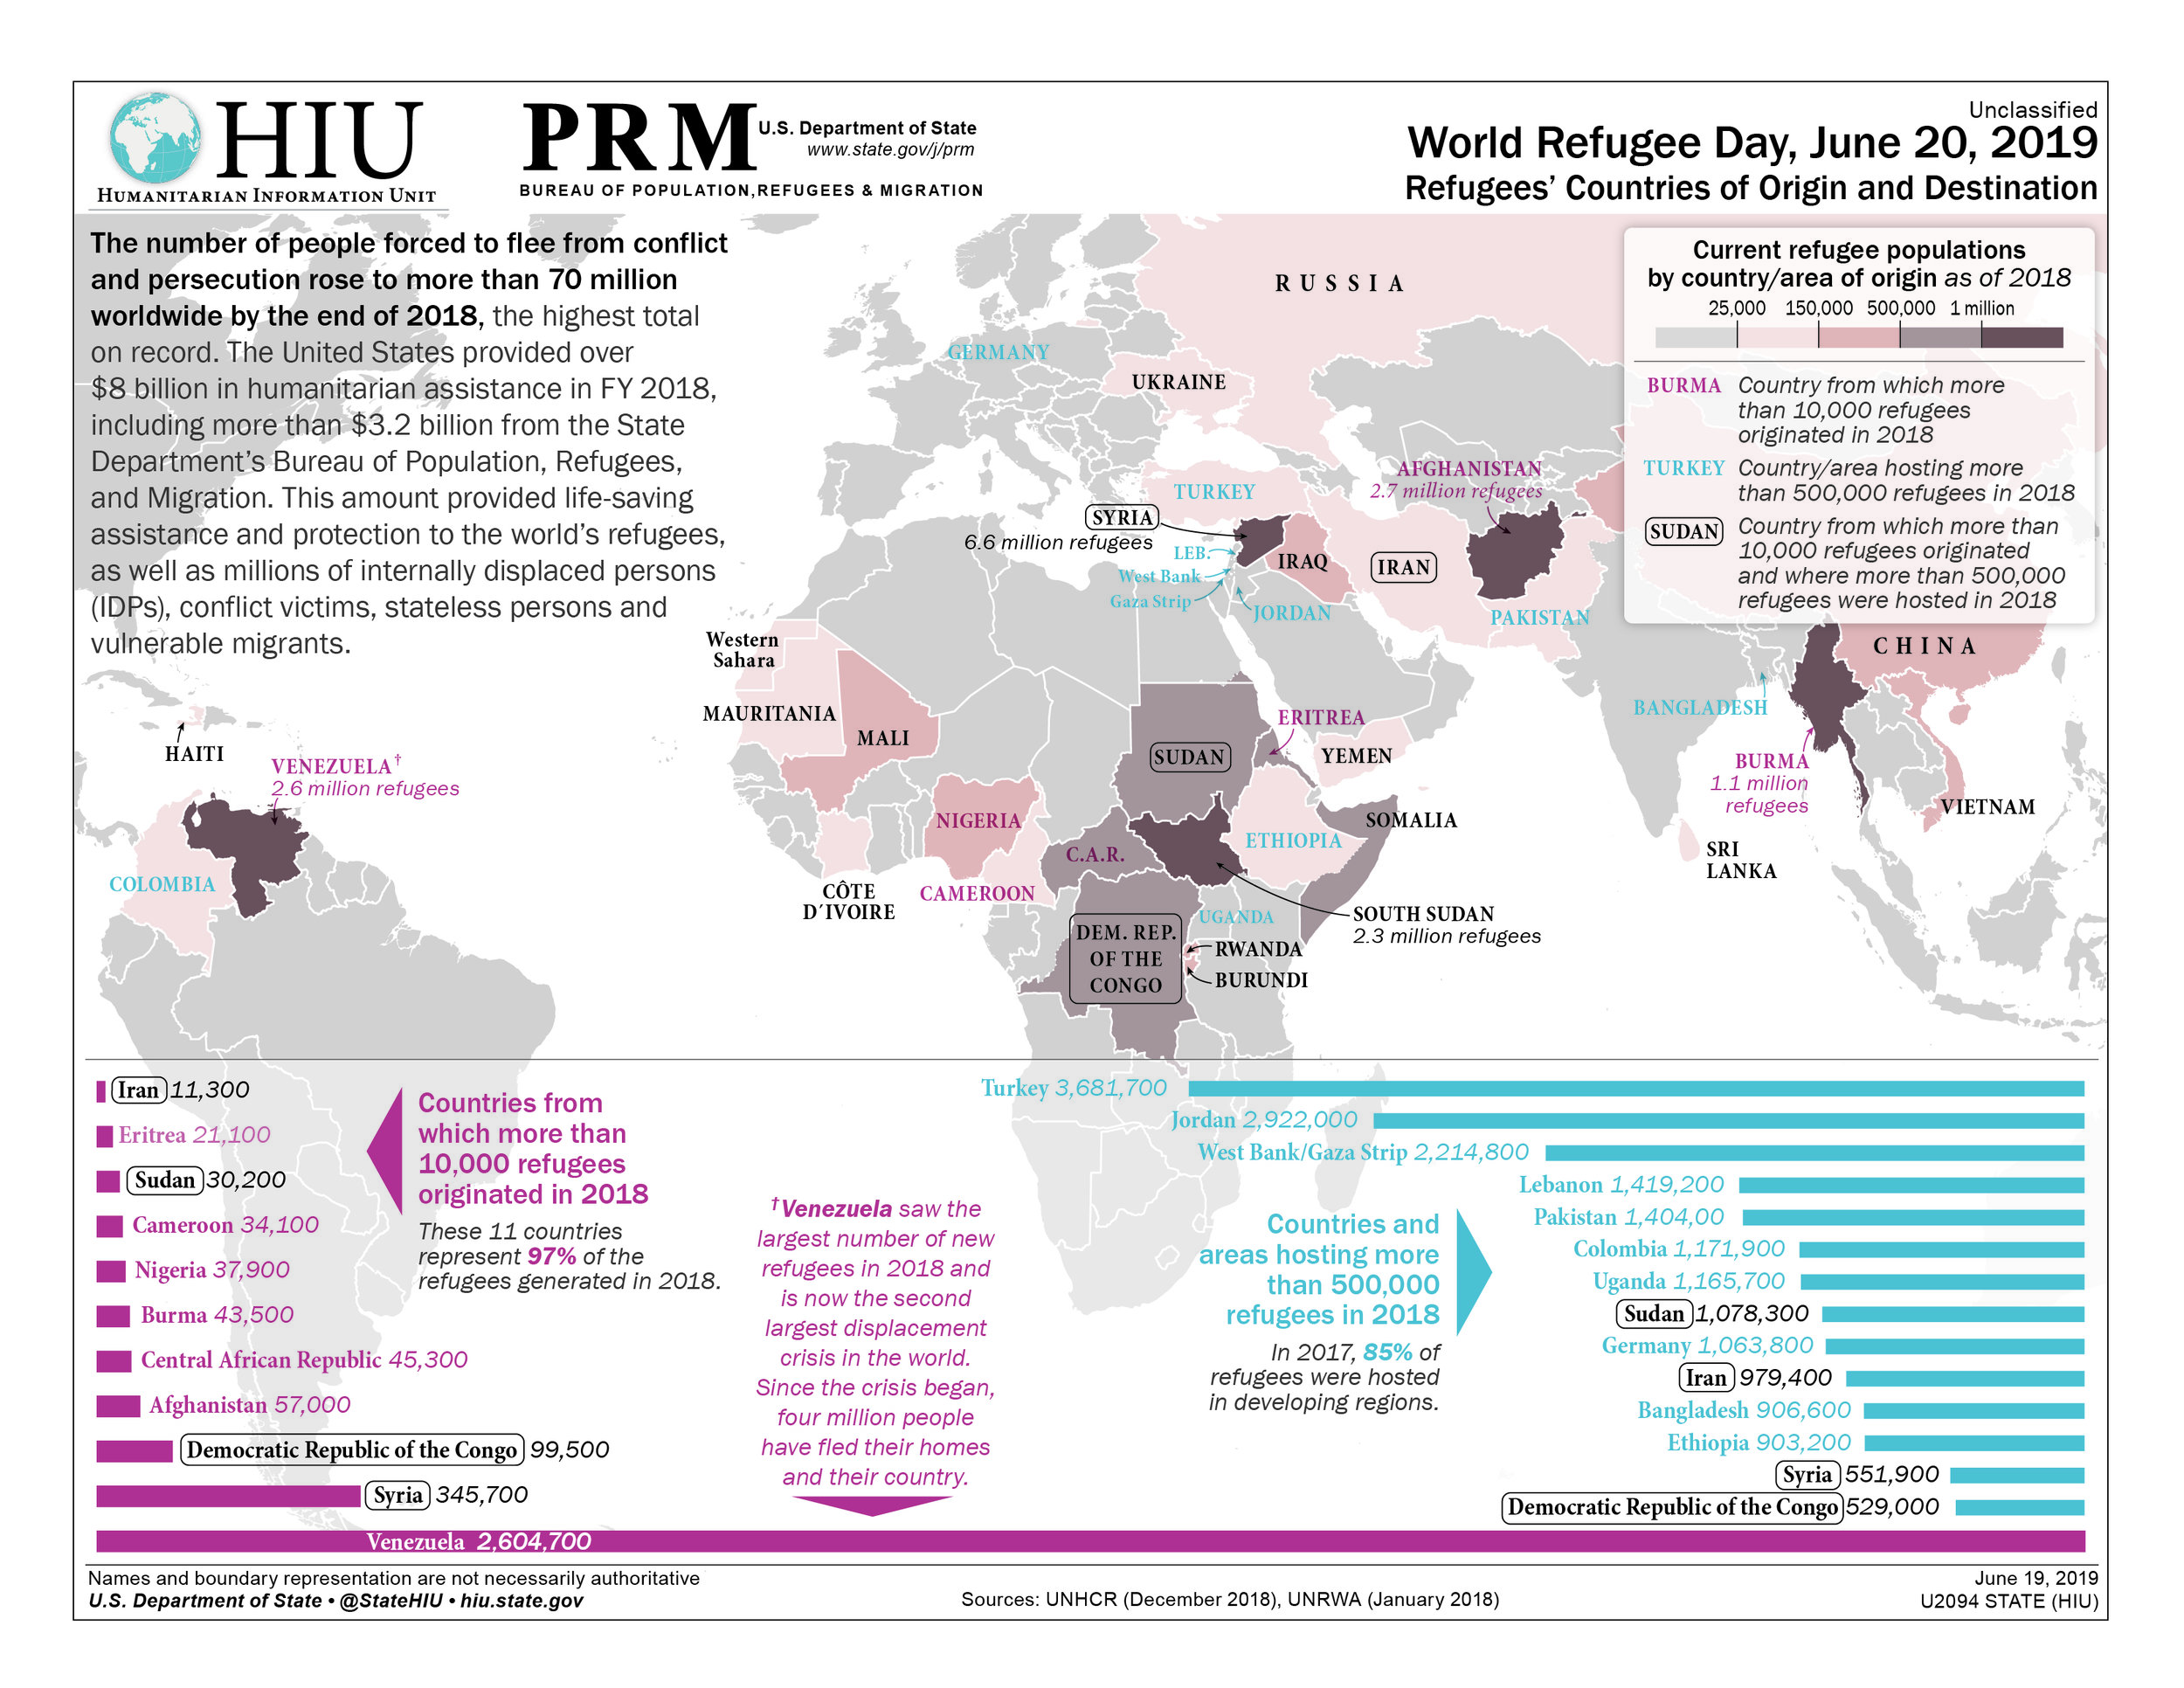 PHM-MOTW_Week3_World_RefugeeDay_2019Jun19_HIU_U2094.jpg